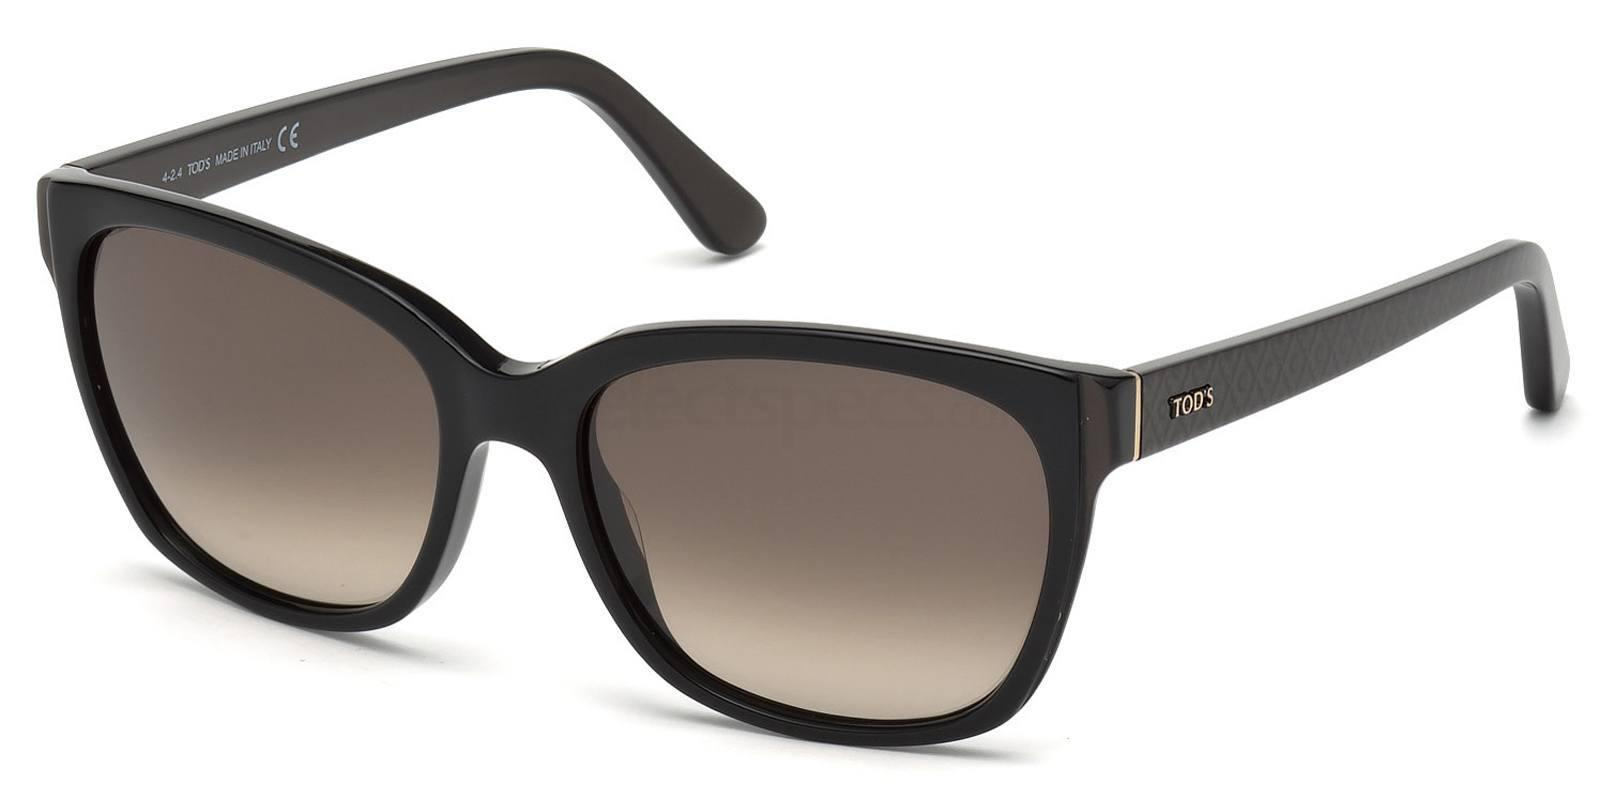 01J TO0159 Sunglasses, TODS